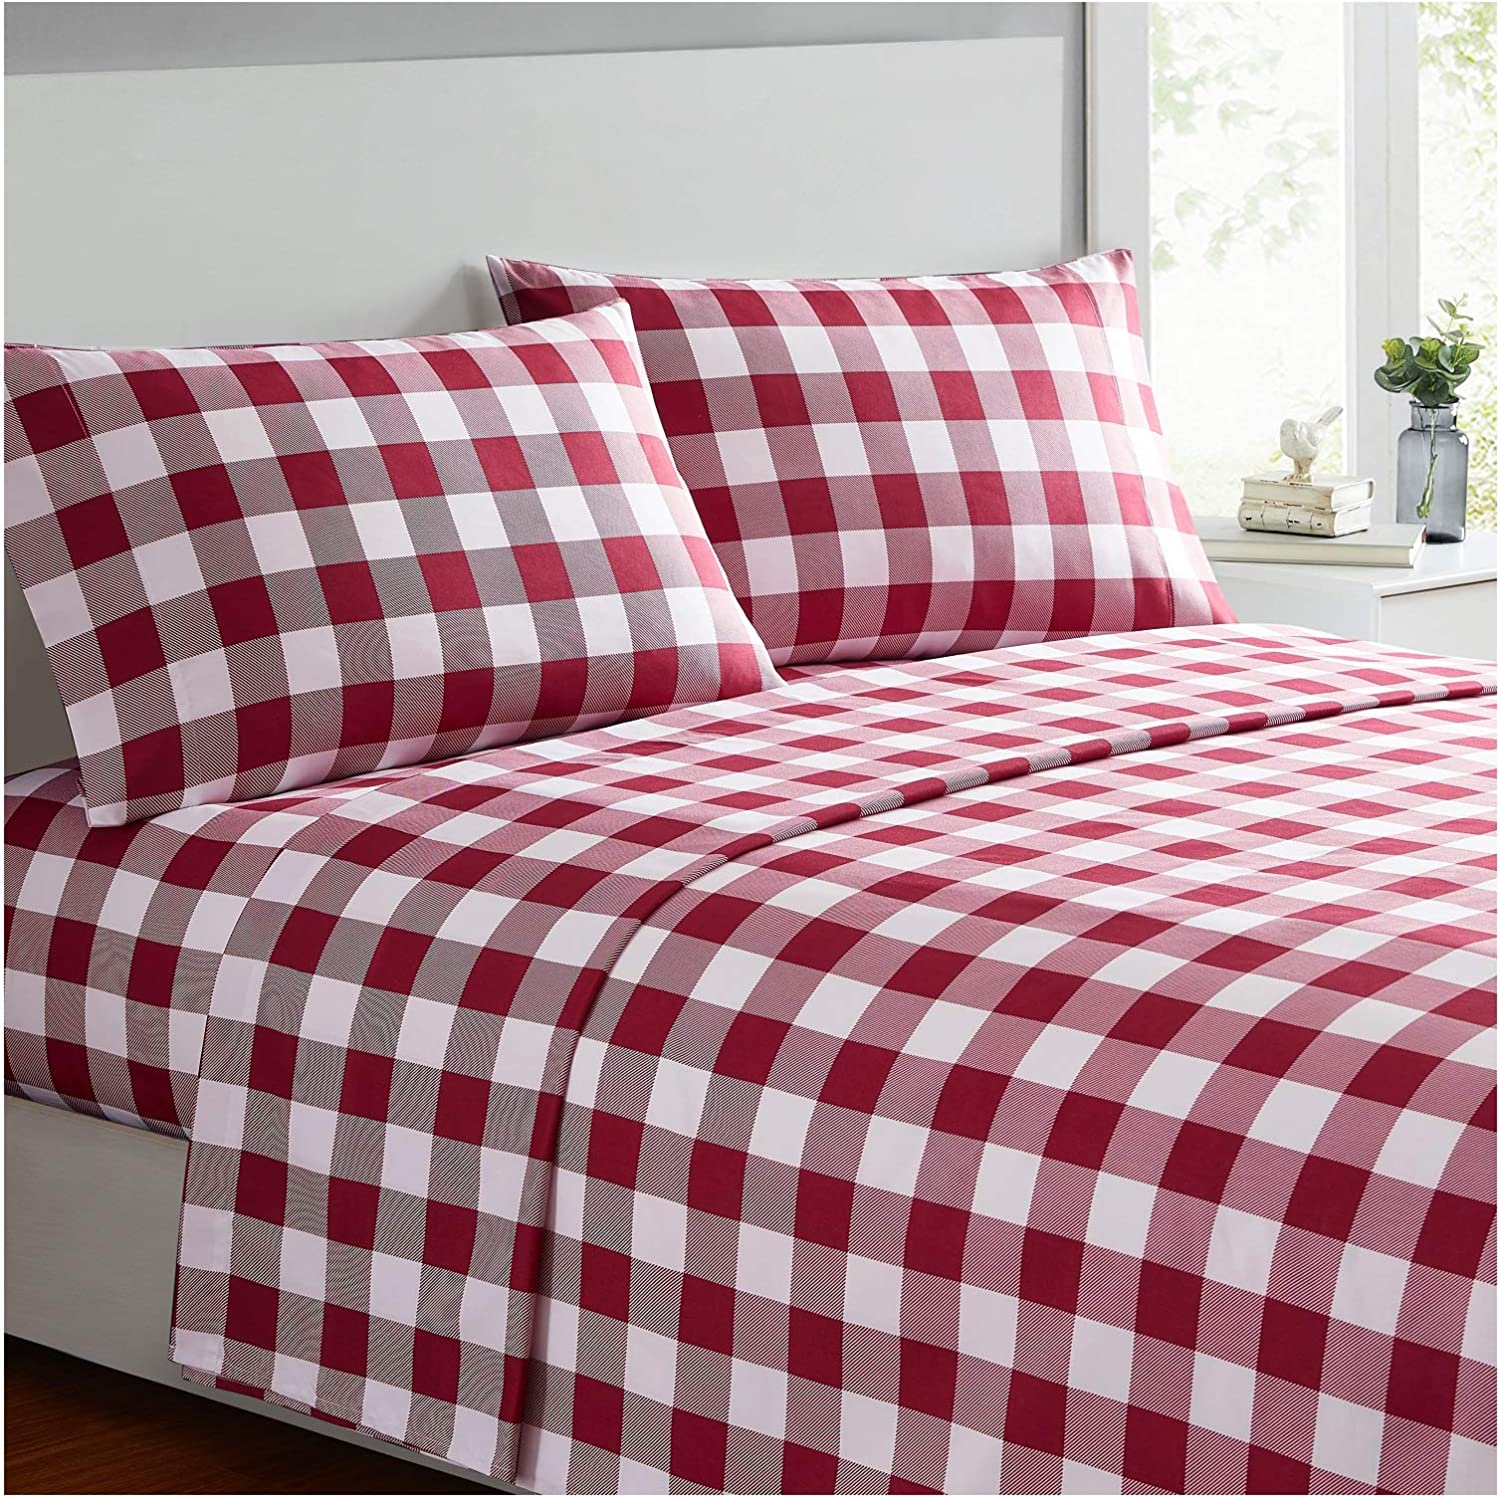 Best Bed Sheets Consumer Reports